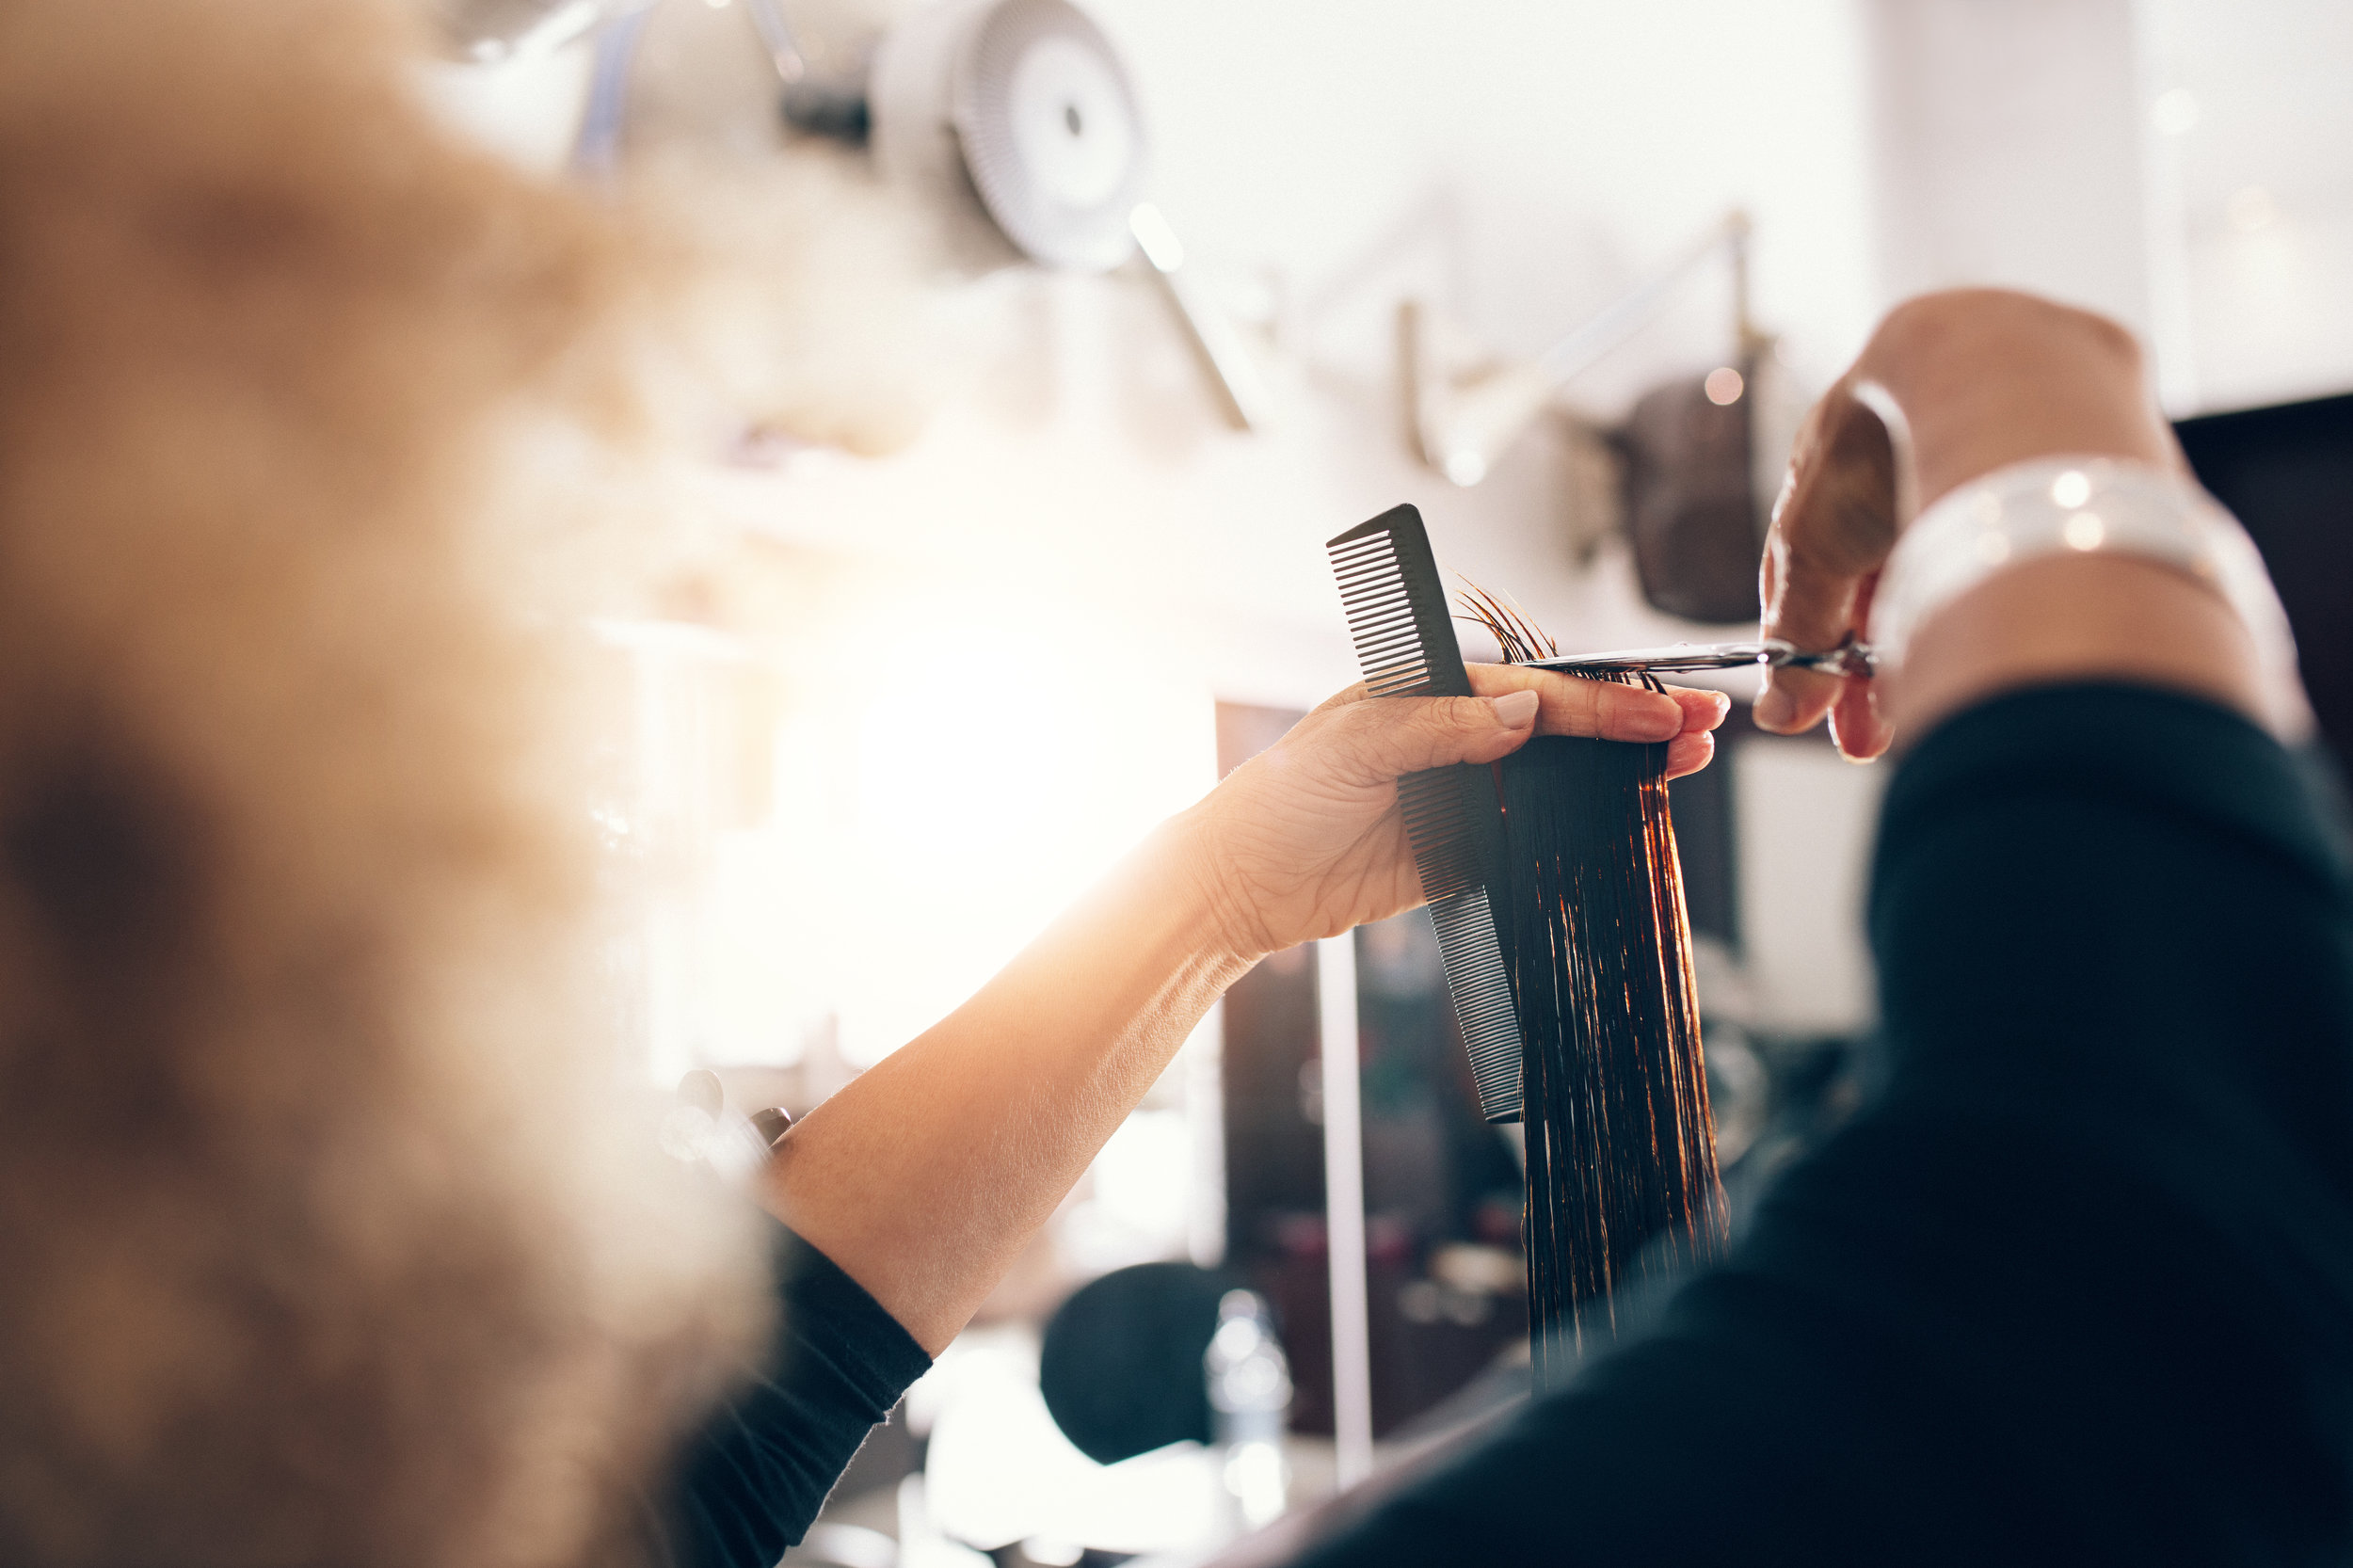 Making Beauty Sustainable - WHAT DOES THIS MEAN ?We are proudly a Green Circle certified salon.Green Circle Salonsprovide the world's first, and North America's only, sustainable salon solution to recover and repurpose beauty waste ensuring that we can help keep people and the planet beautiful.This allows us to divert up to 95% of the resources that were once considered waste; materials such as hair, leftover hair color, foils, color tubes, aerosol cans, paper and plastics. Urban Rose Salon drives the industries new standard as a responsible steward of our planet.